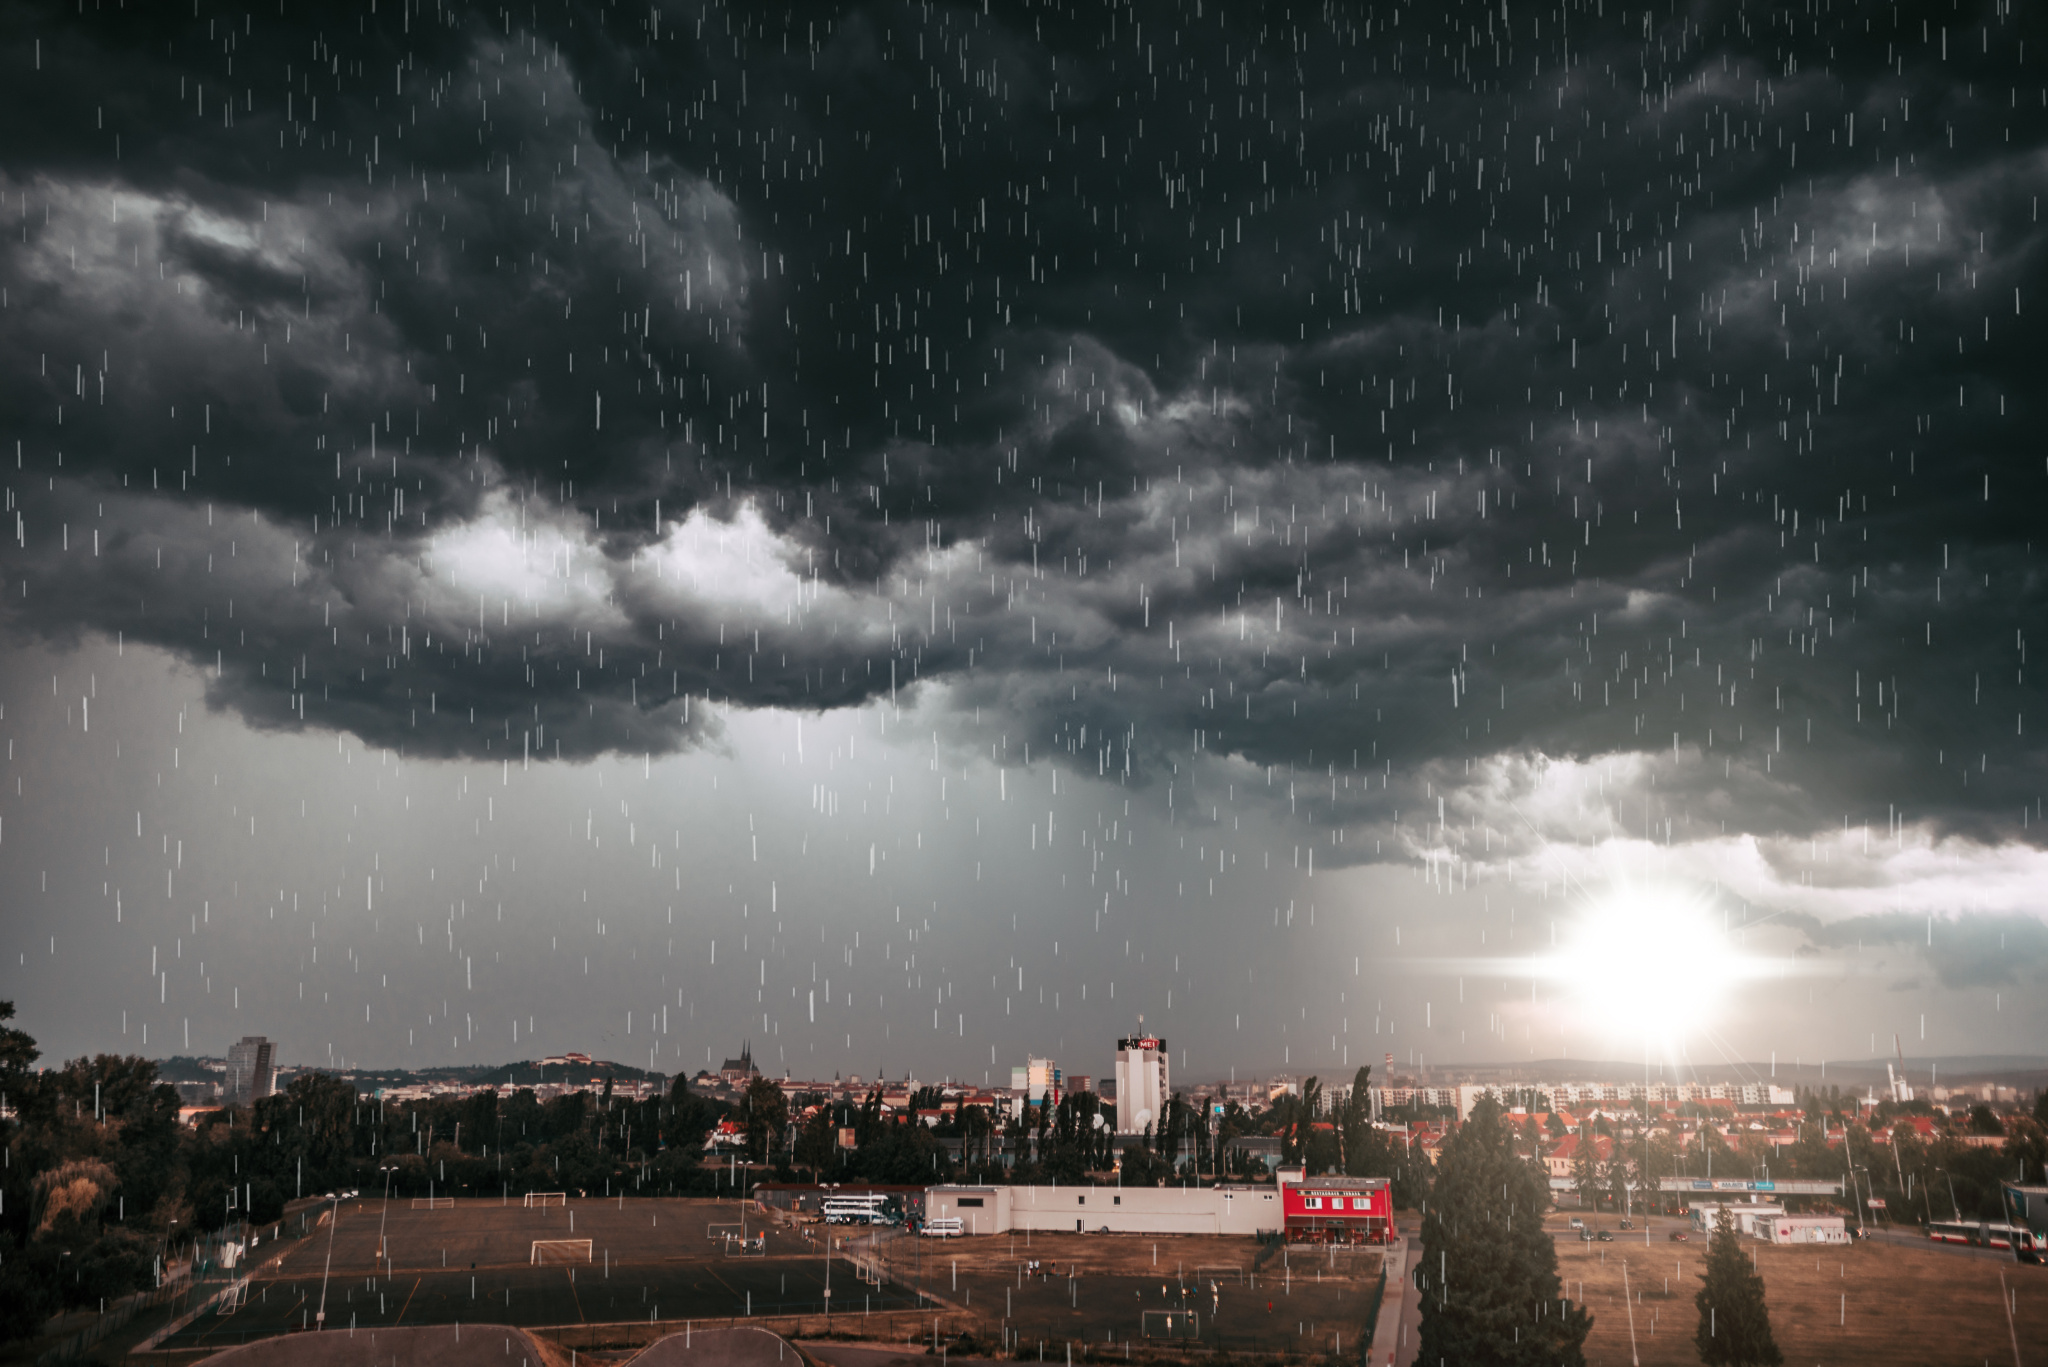 6 Edits You'll Do Better to Avoid - added rain